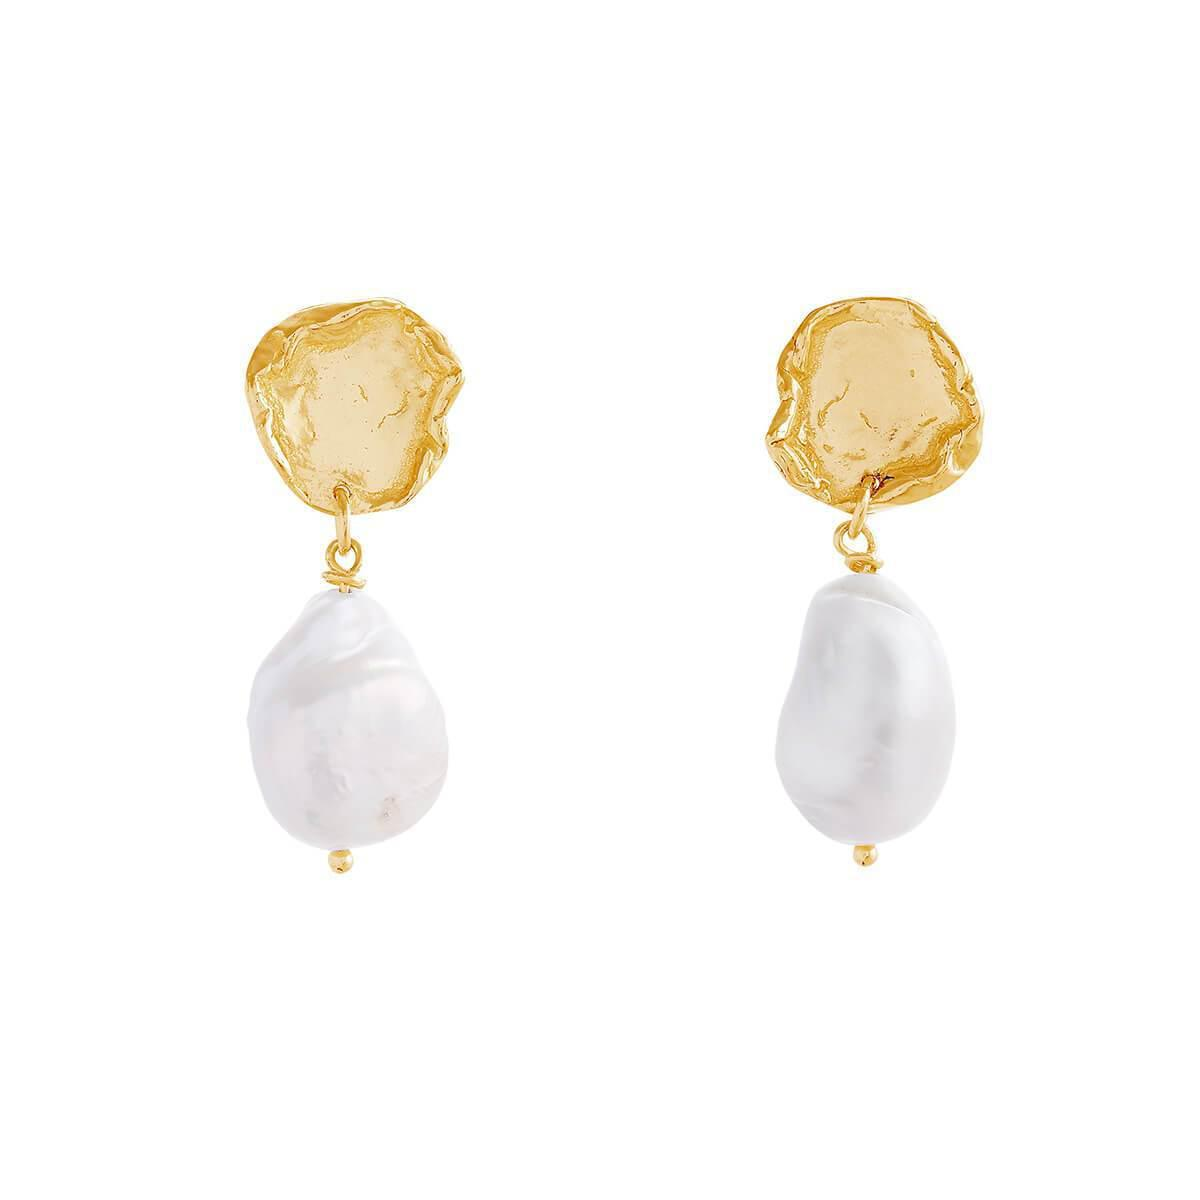 Deborah Blyth Jewellery Wave Stud Earrings With Pearls NyypTqede